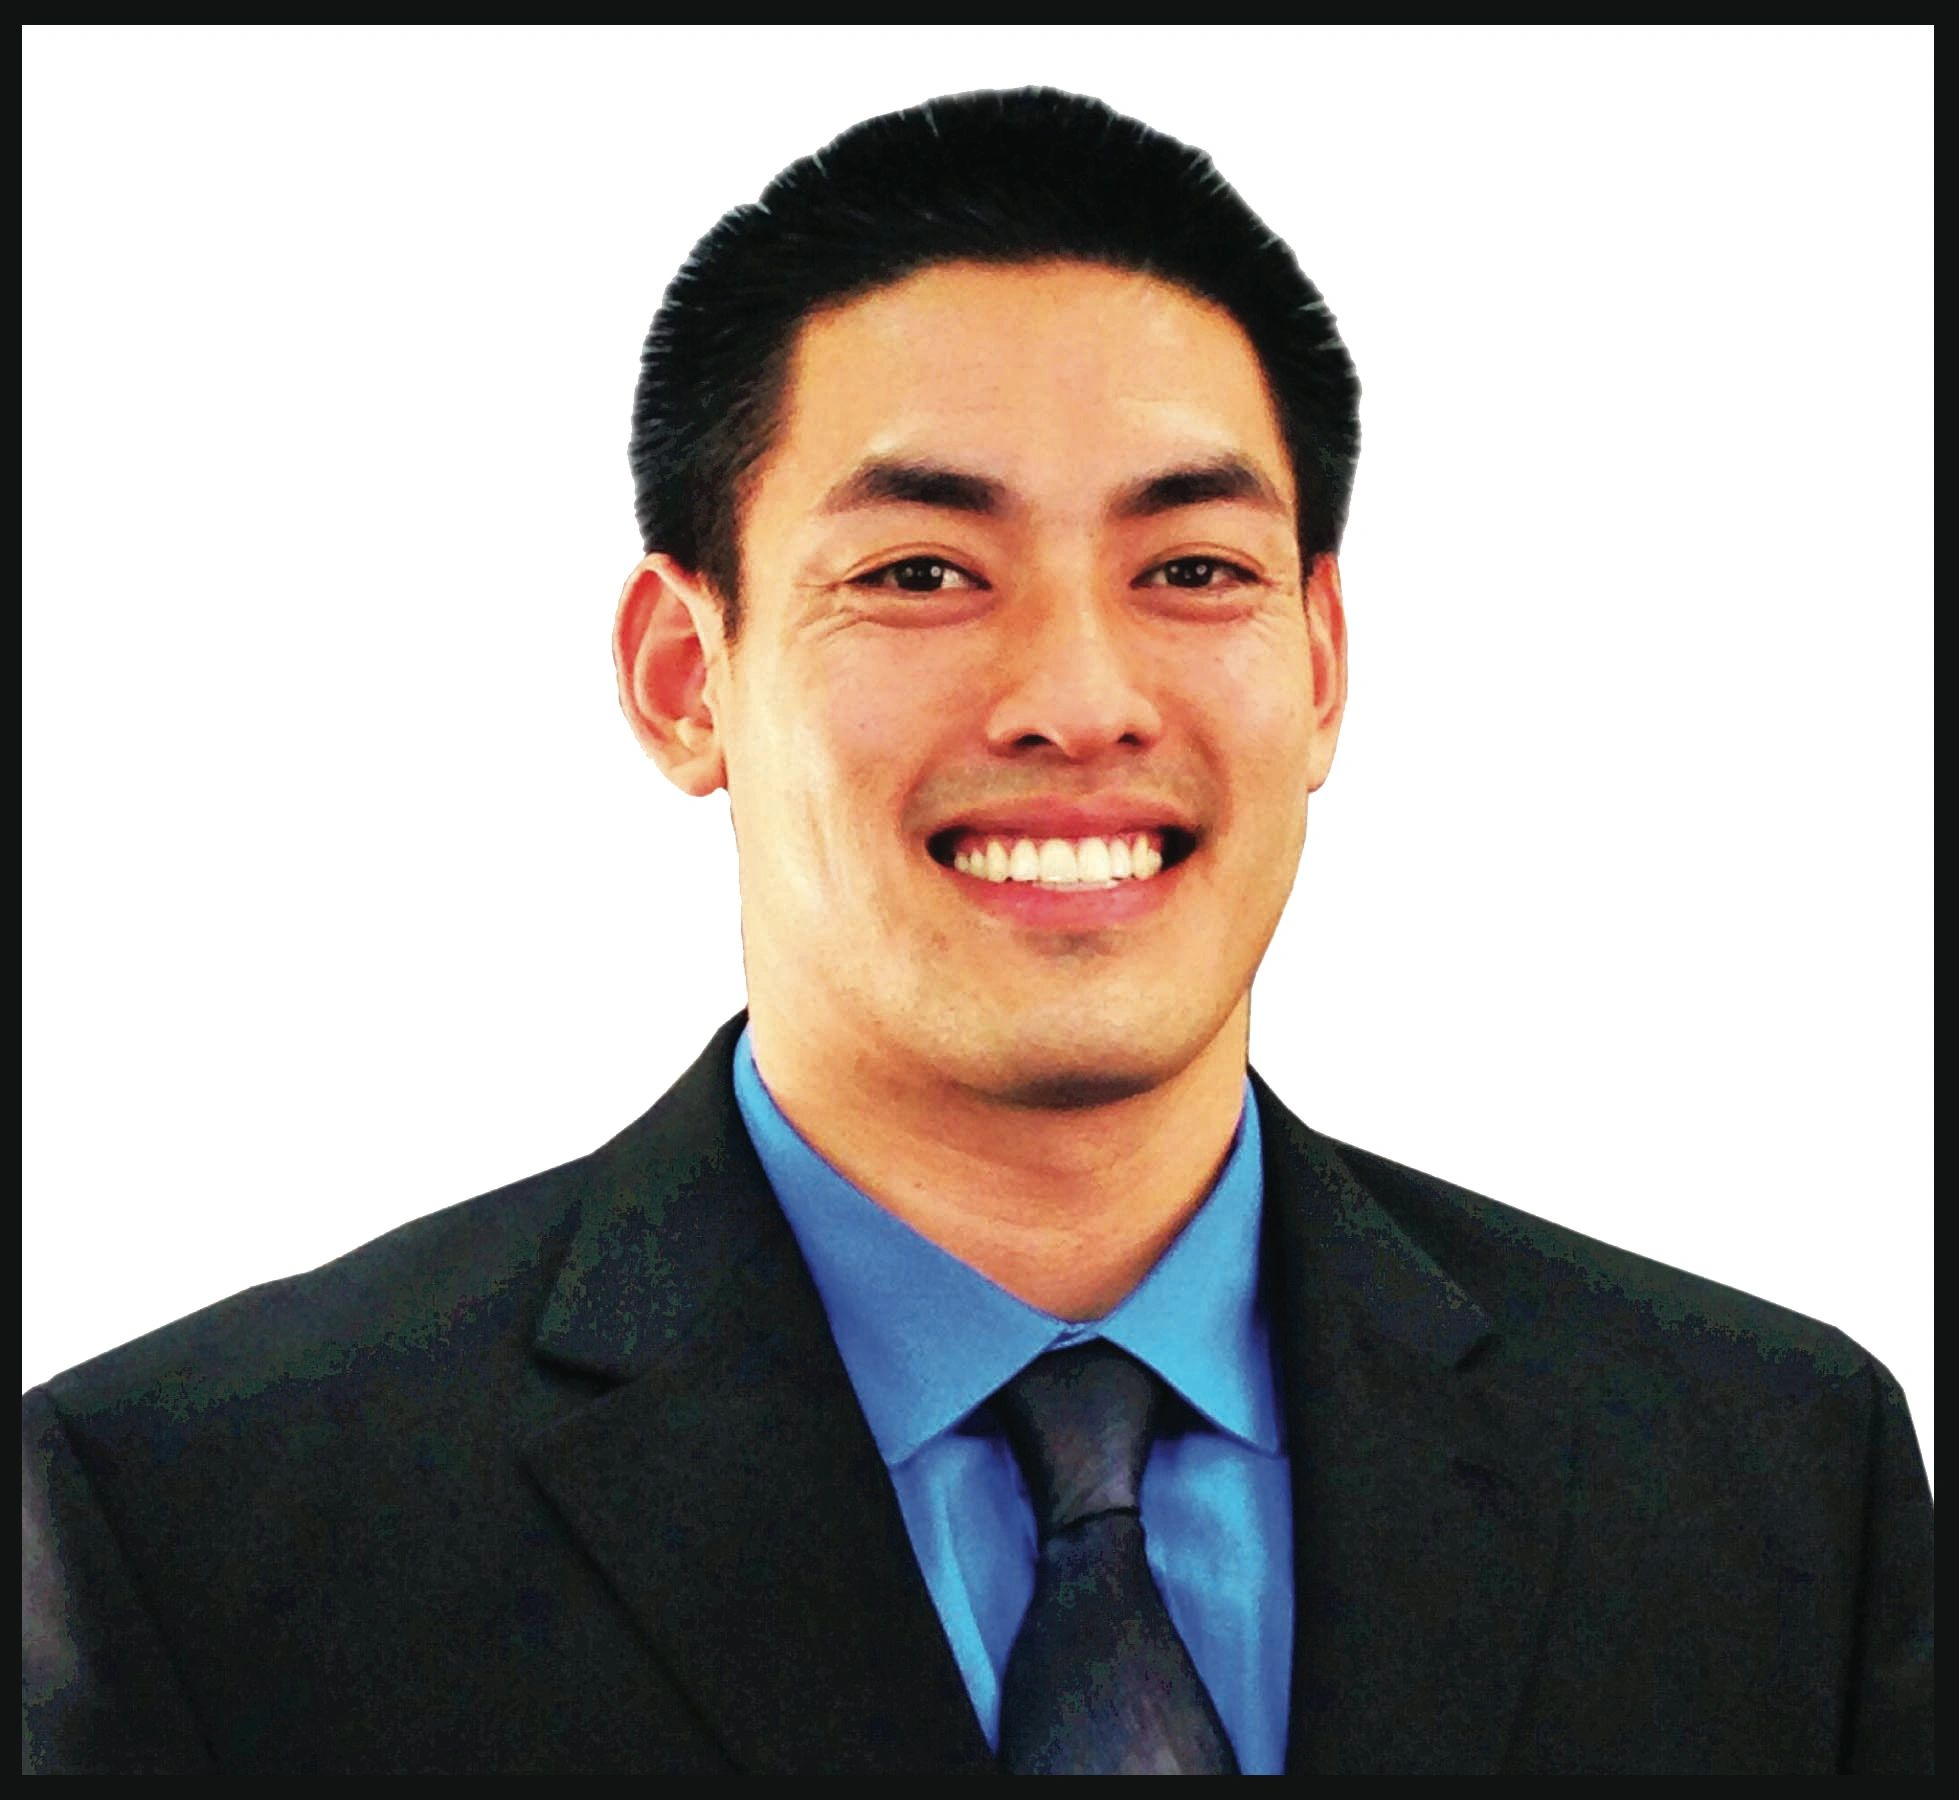 Chris Lum Realtor from ReMax and Lum Realty, Home Buyer and Seller Agent for California BRE#01944720